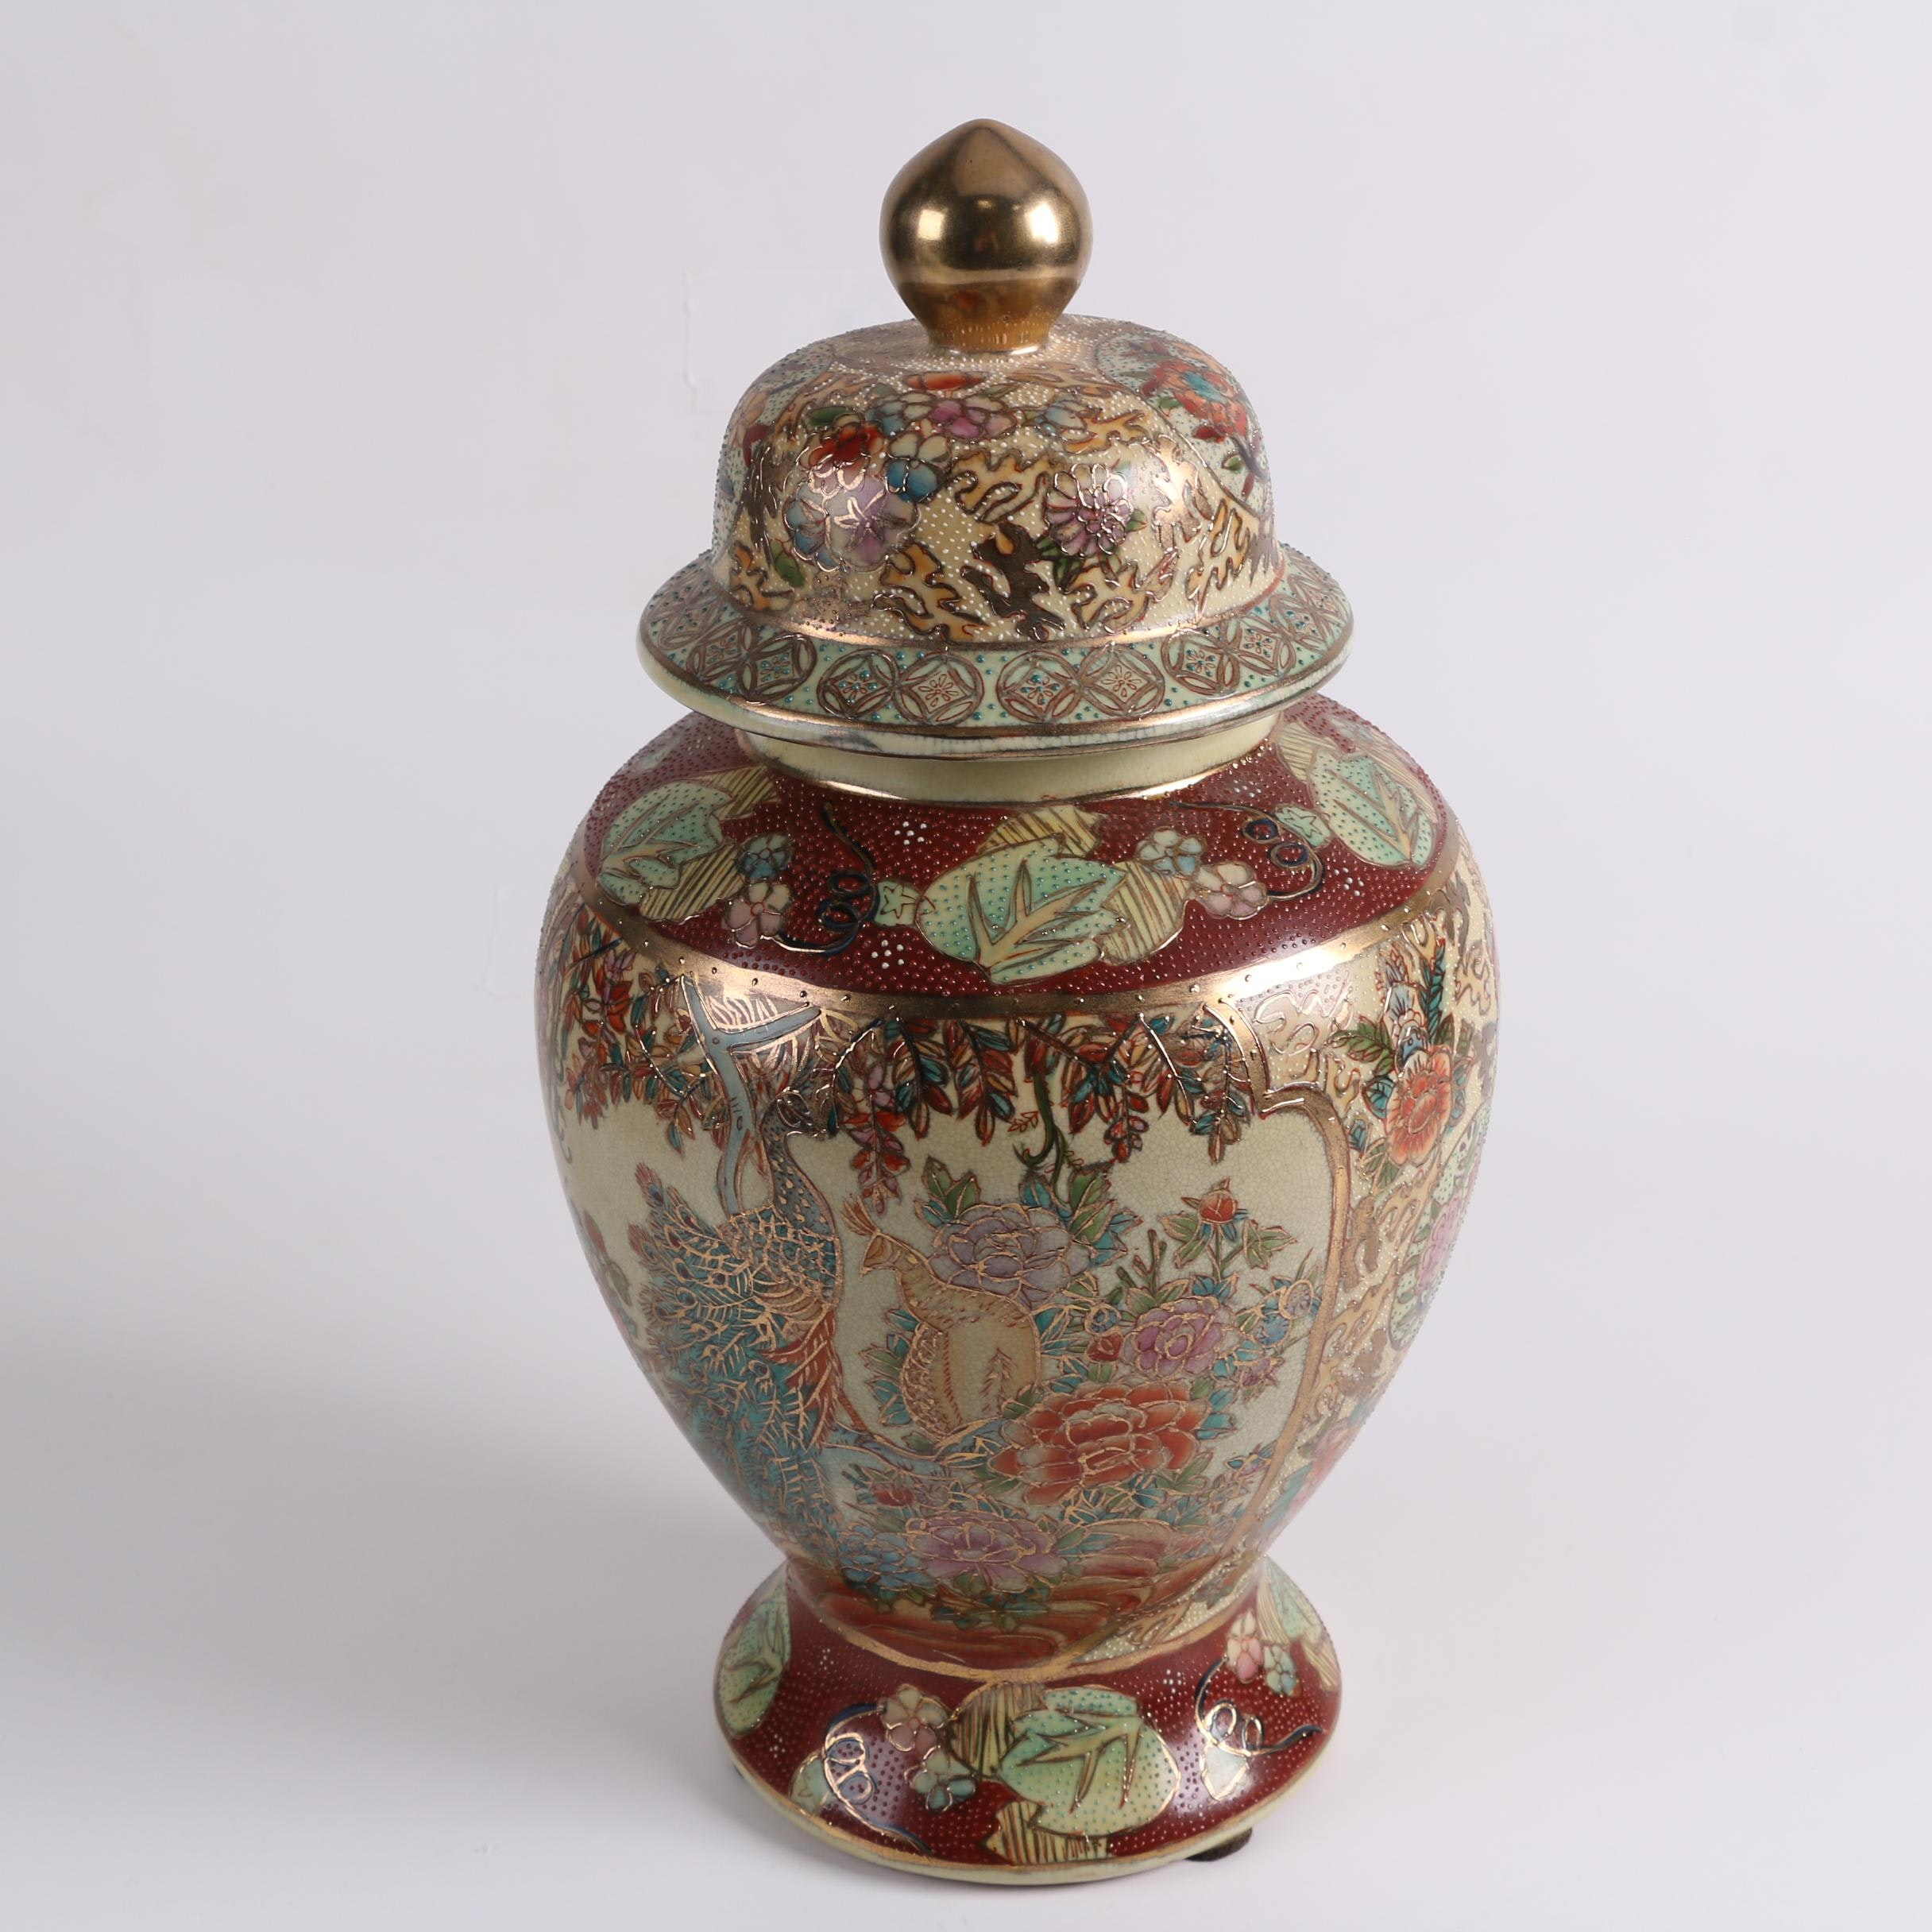 Chinese Satsuma Style Lidded Ceramic Urn with Gilt Accents